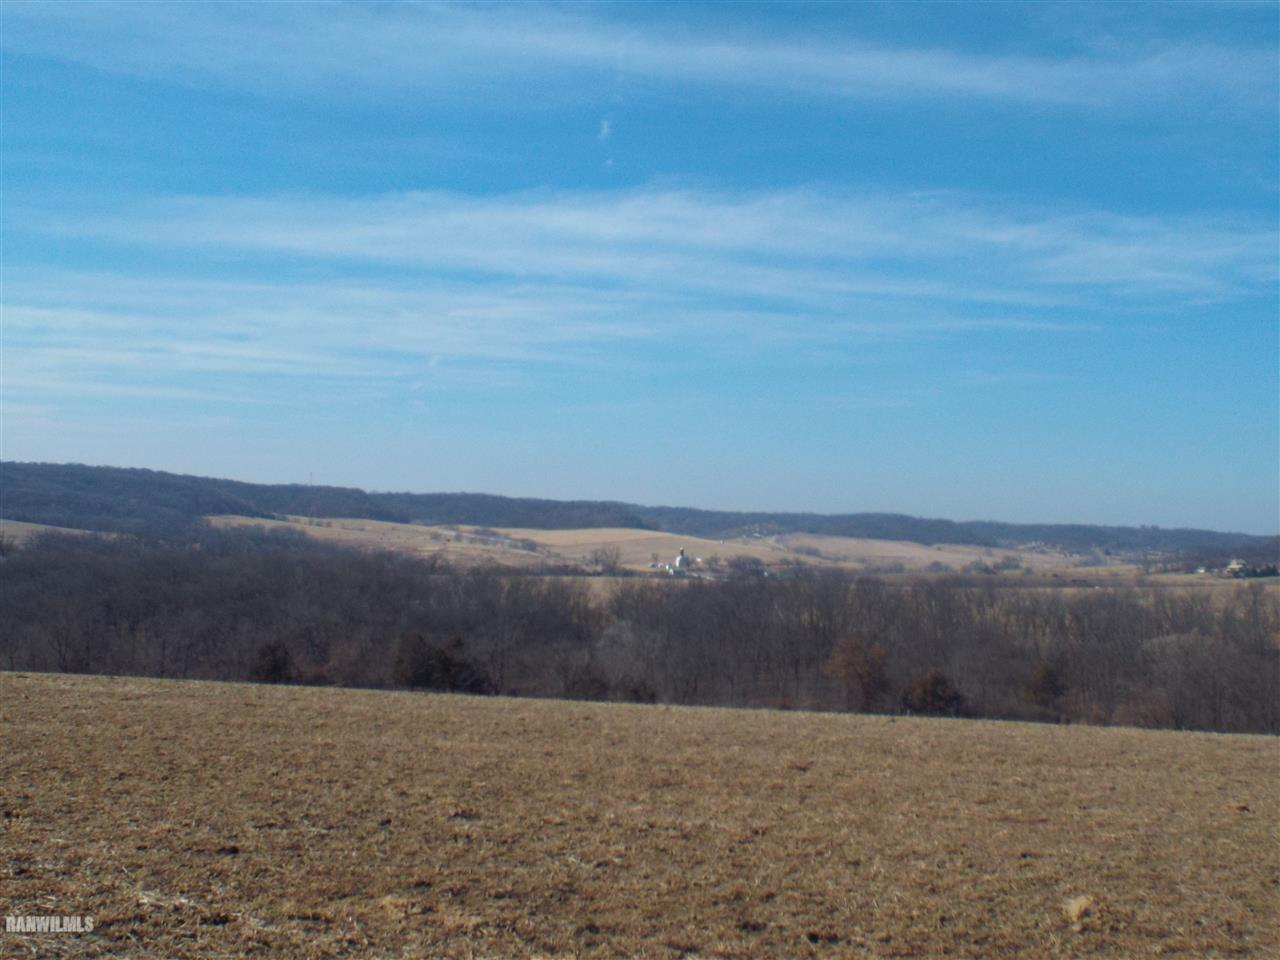 Image of Acreage for Sale near Elizabeth, Illinois, in Jo Daviess County: 118.49 acres